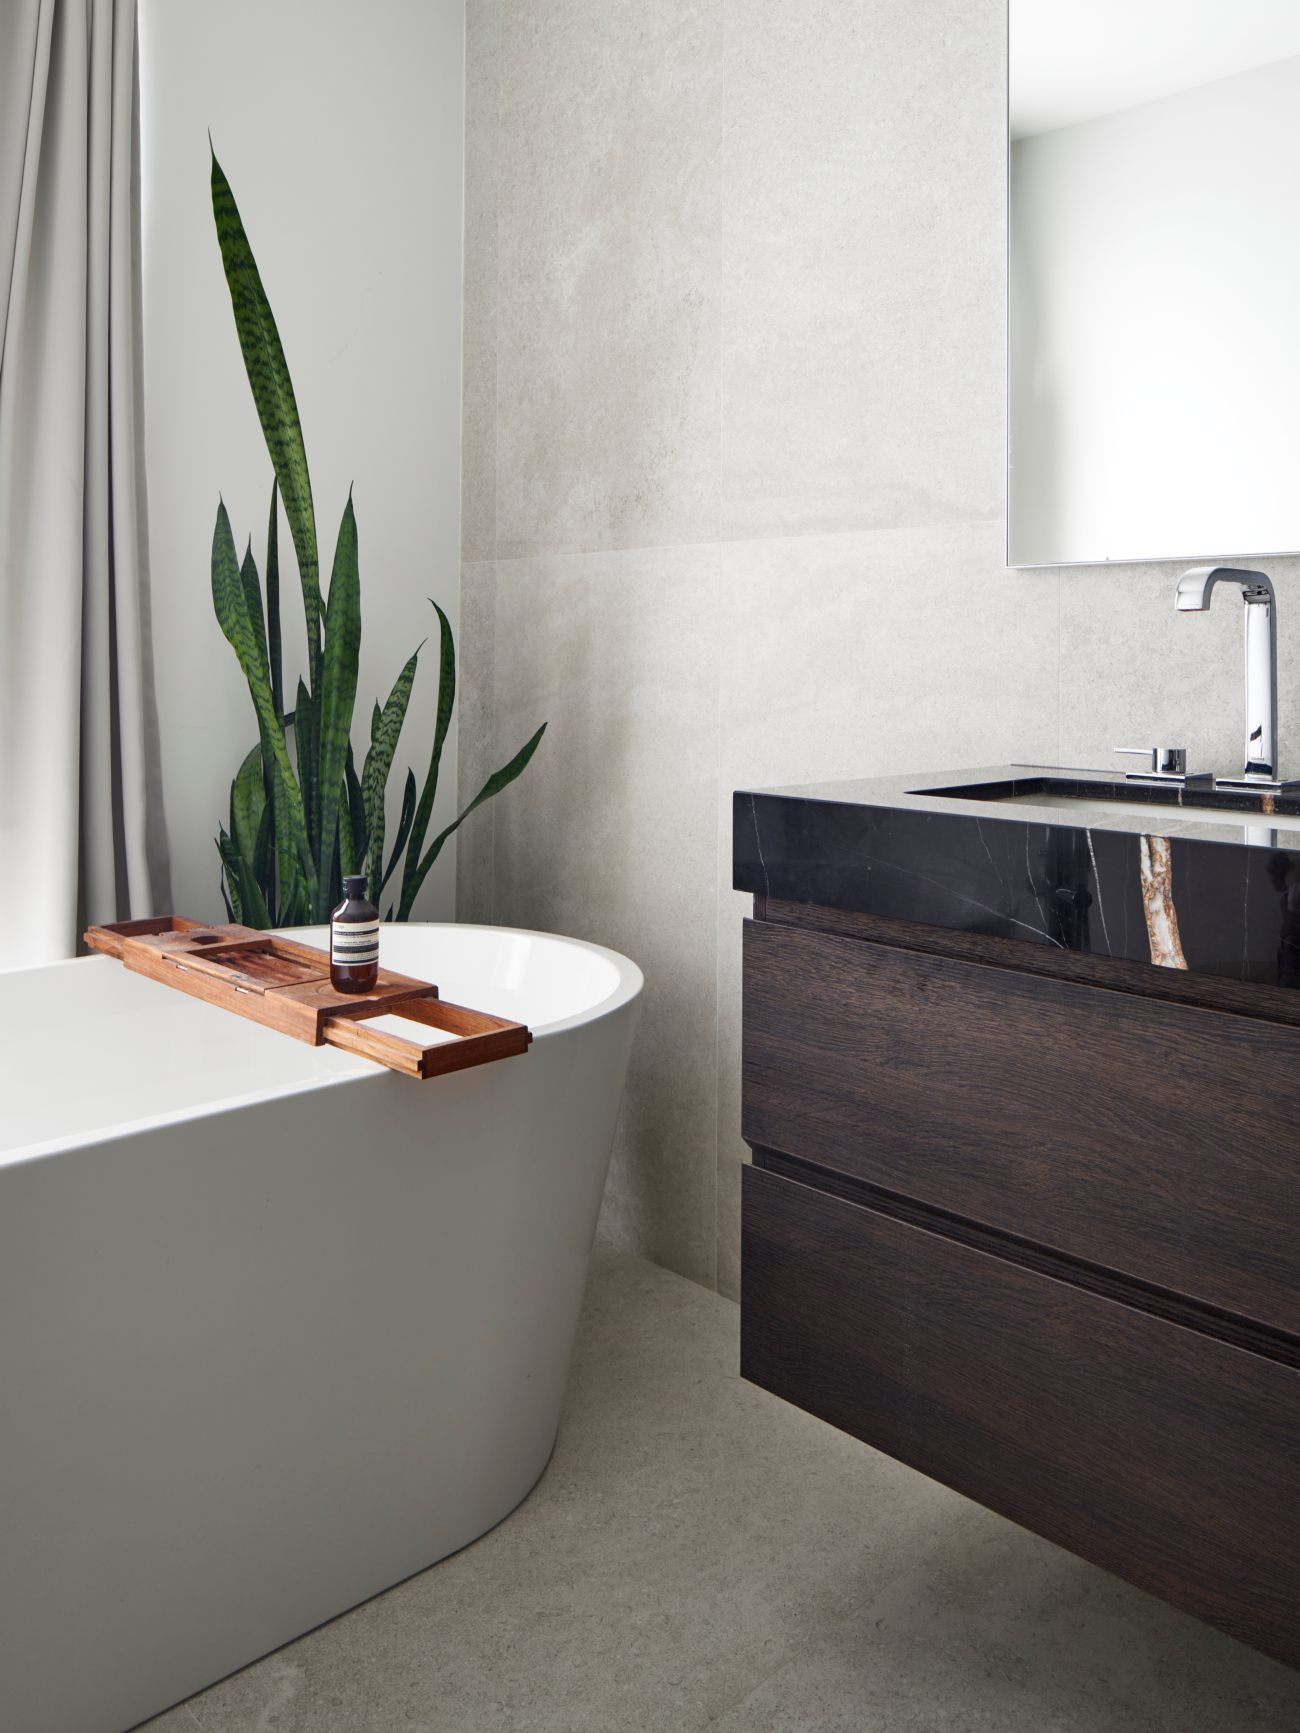 The freestanding tub is by Maax, while the vanity, by Scavolini, is topped with Nero Tunisi marble from Olympia Tile + Stone. Fixtures by Grohe; floor and wall tiles from Stone Tile.